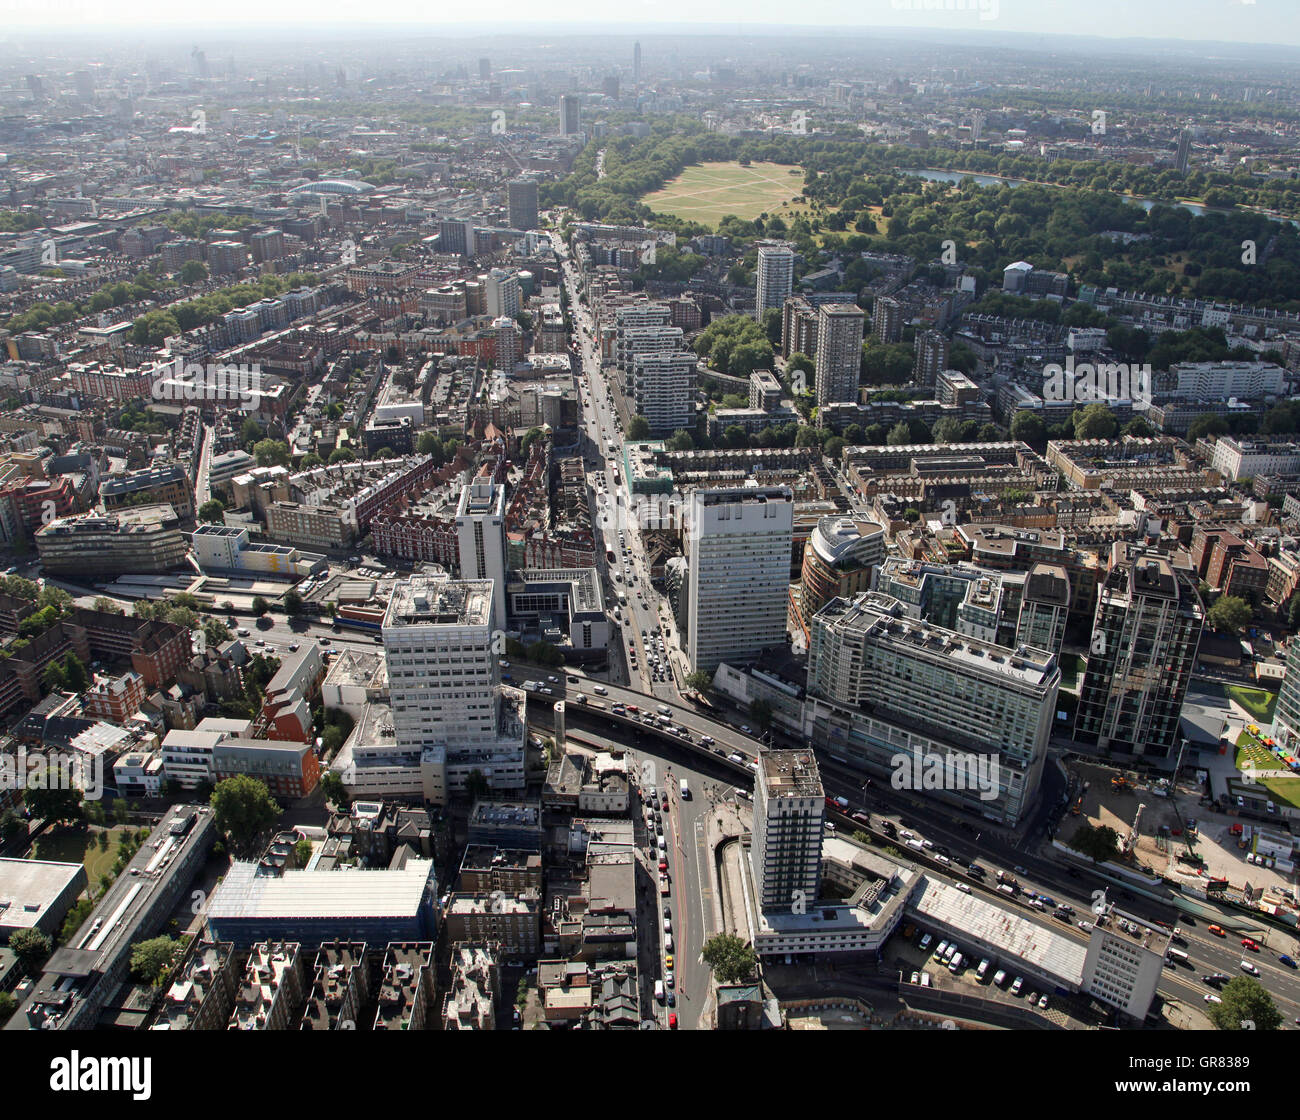 aerial view looking south down the A5 Edgware Road, London from the A4 to Hyde Park Corner, UK - Stock Image